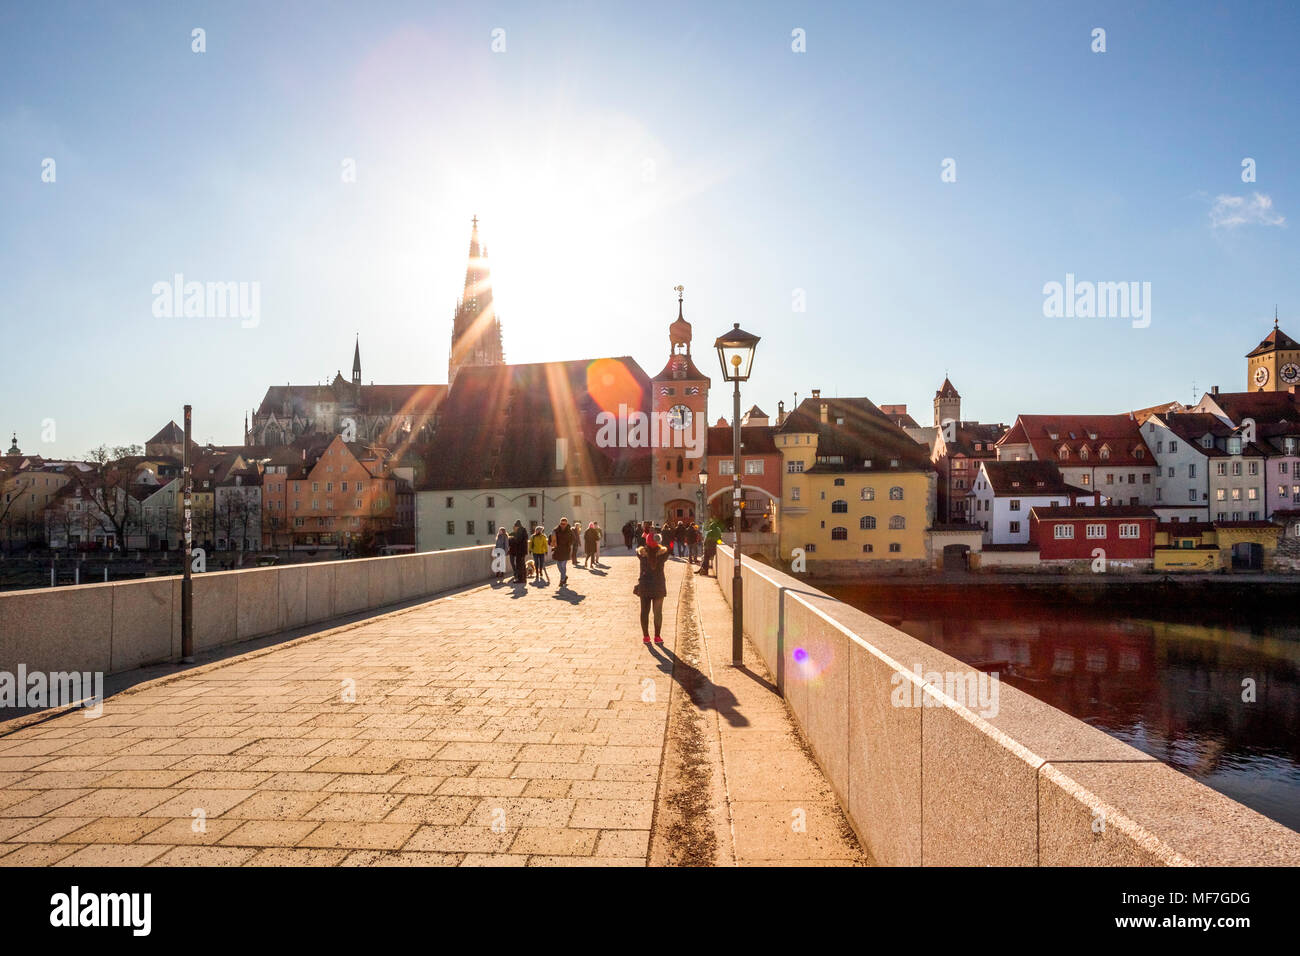 Germany, Regensburg, view to cathedral at the old town with Steinerne Bruecke in the foreground - Stock Image